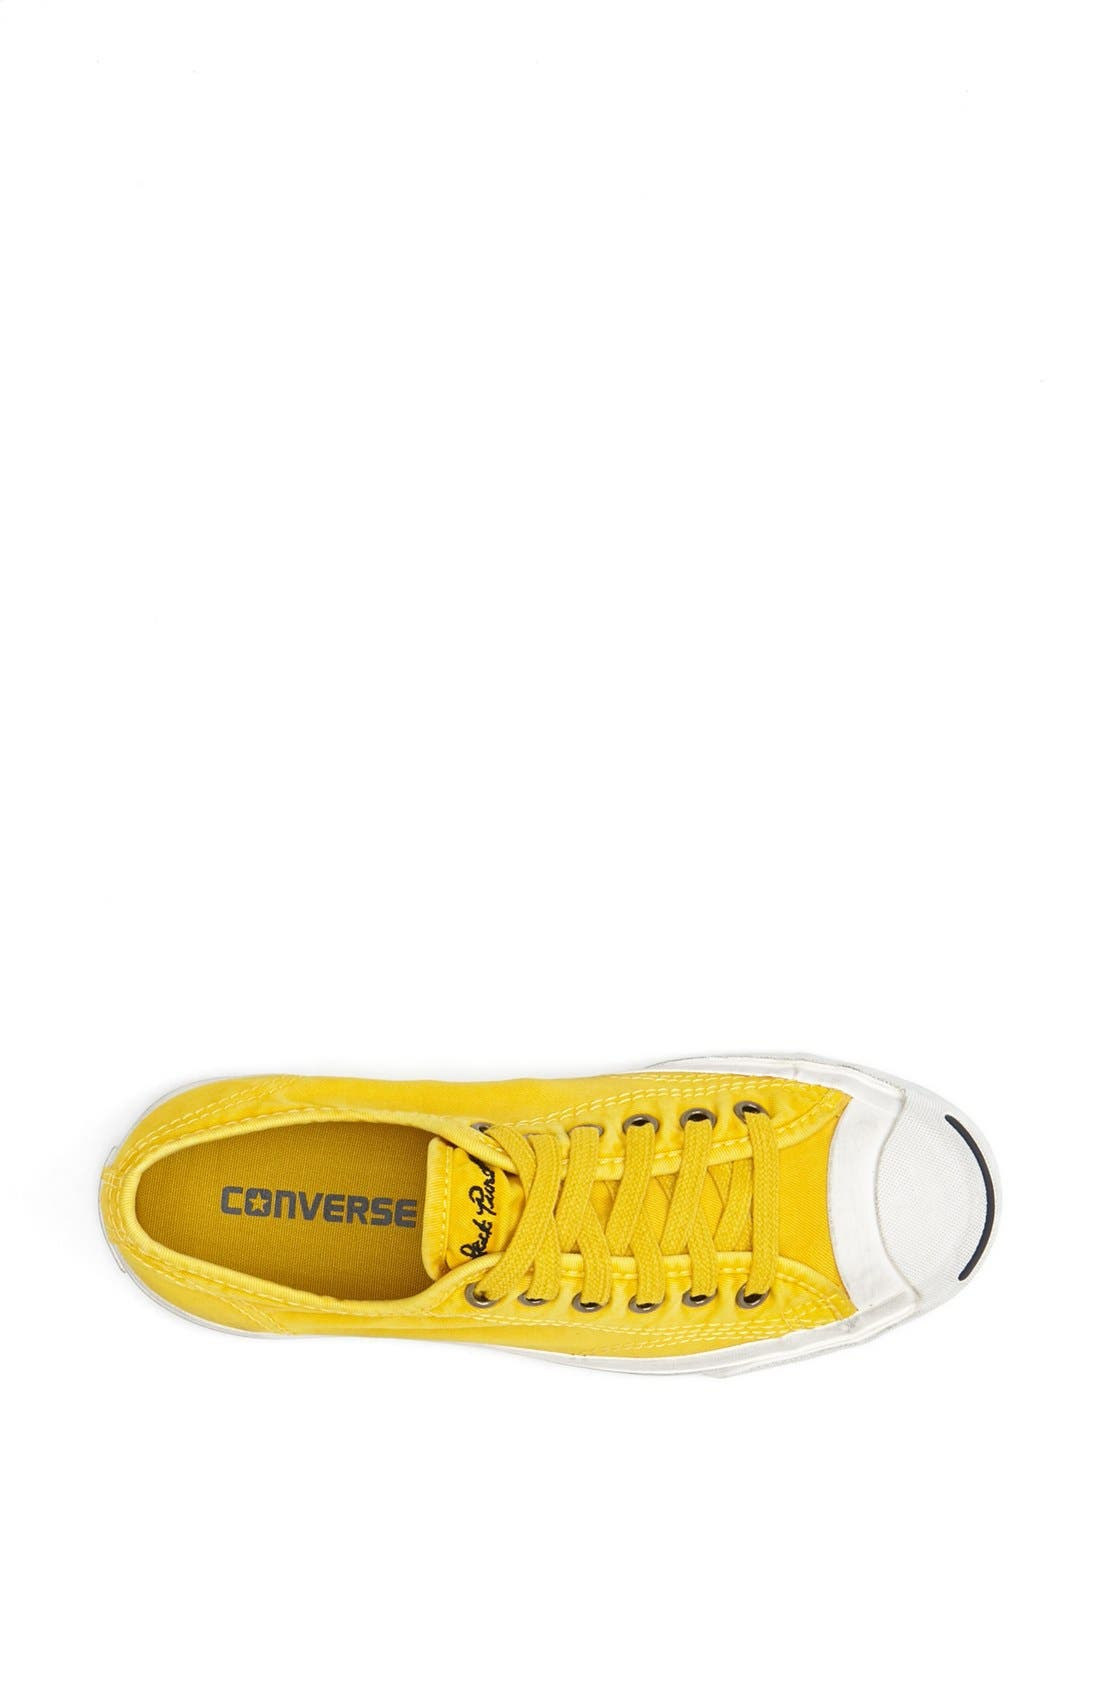 Alternate Image 3  - Converse 'Jack Purcell' Sneaker (Women)